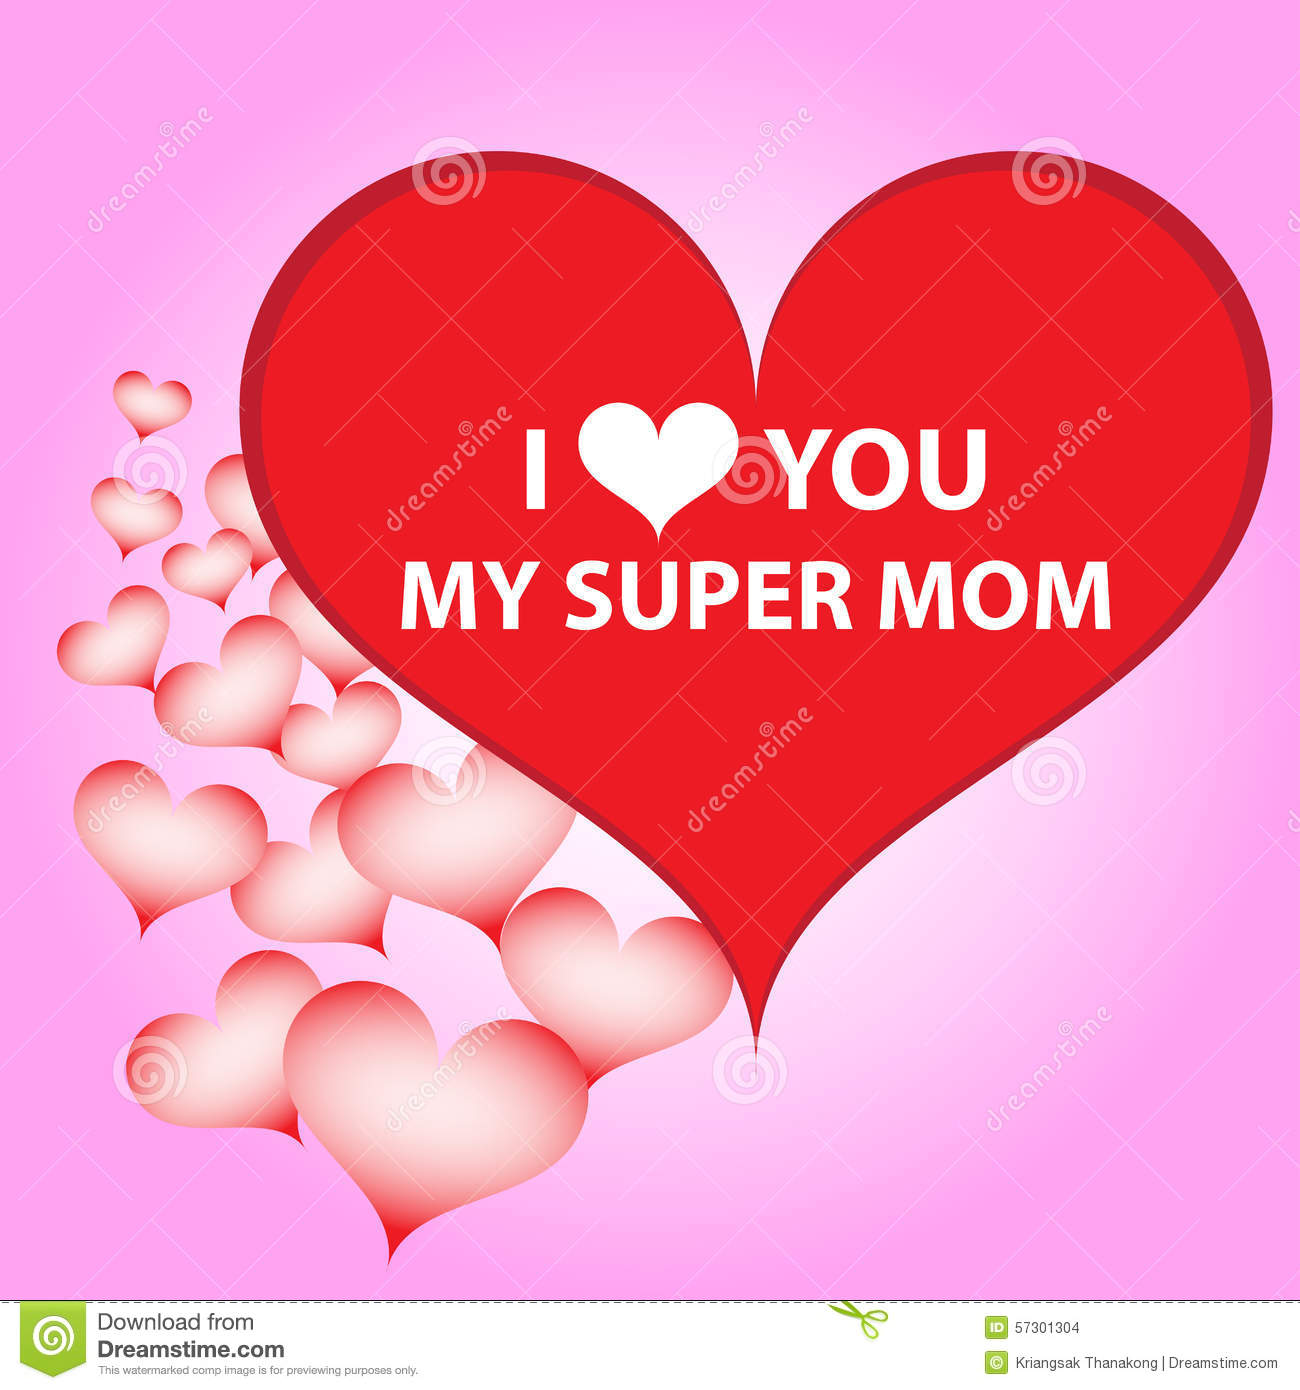 i love you mom stock vector image 57301304 happy mother's day clip art for sister happy mother's day clip art for facebook